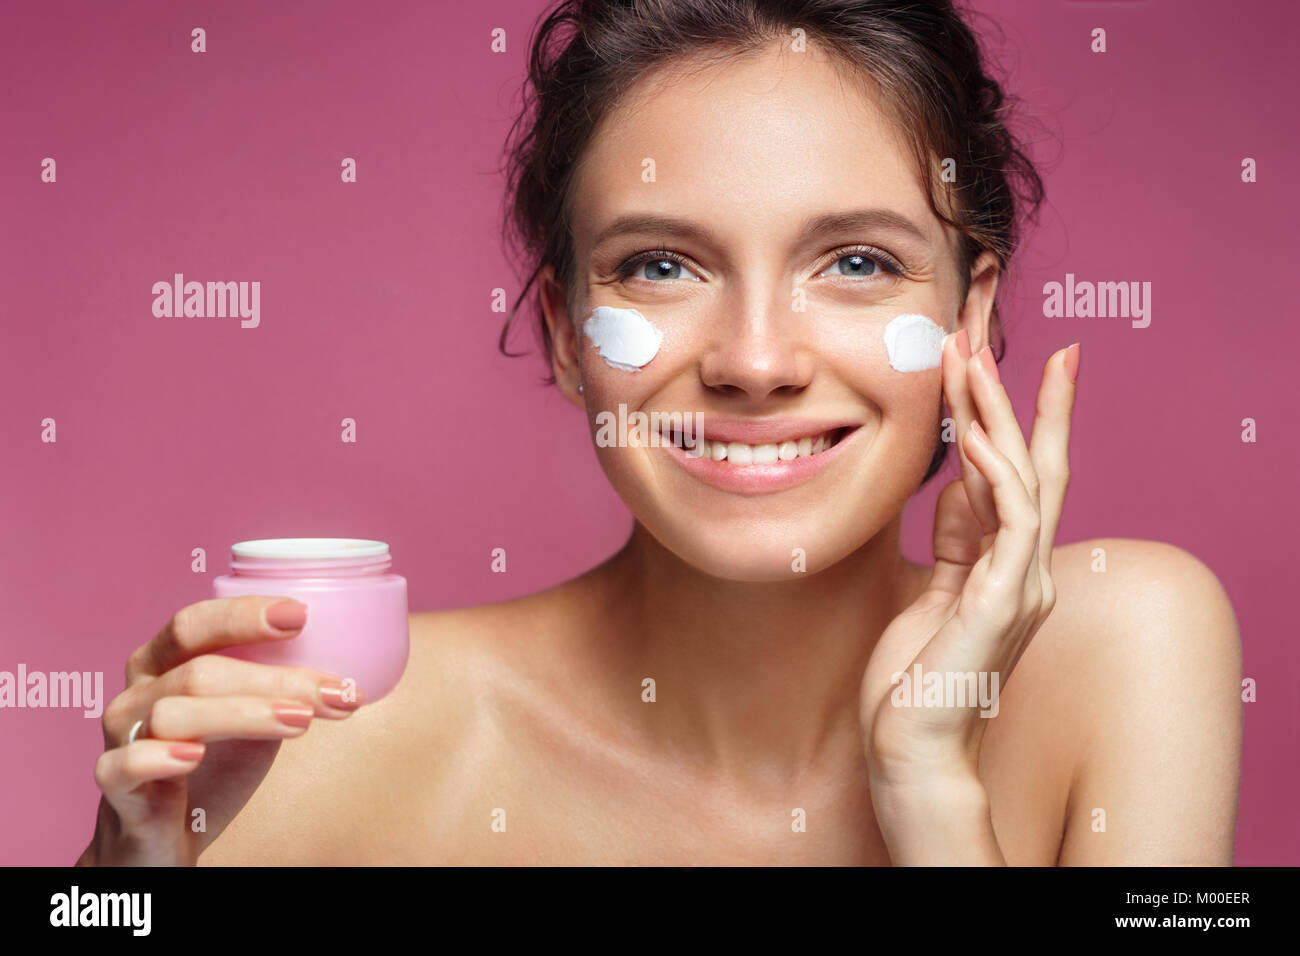 Woman applying wrinkle cream or anti-aging skin care cream. Photo of smiling woman with healthy skin on pink background. - Stock Image